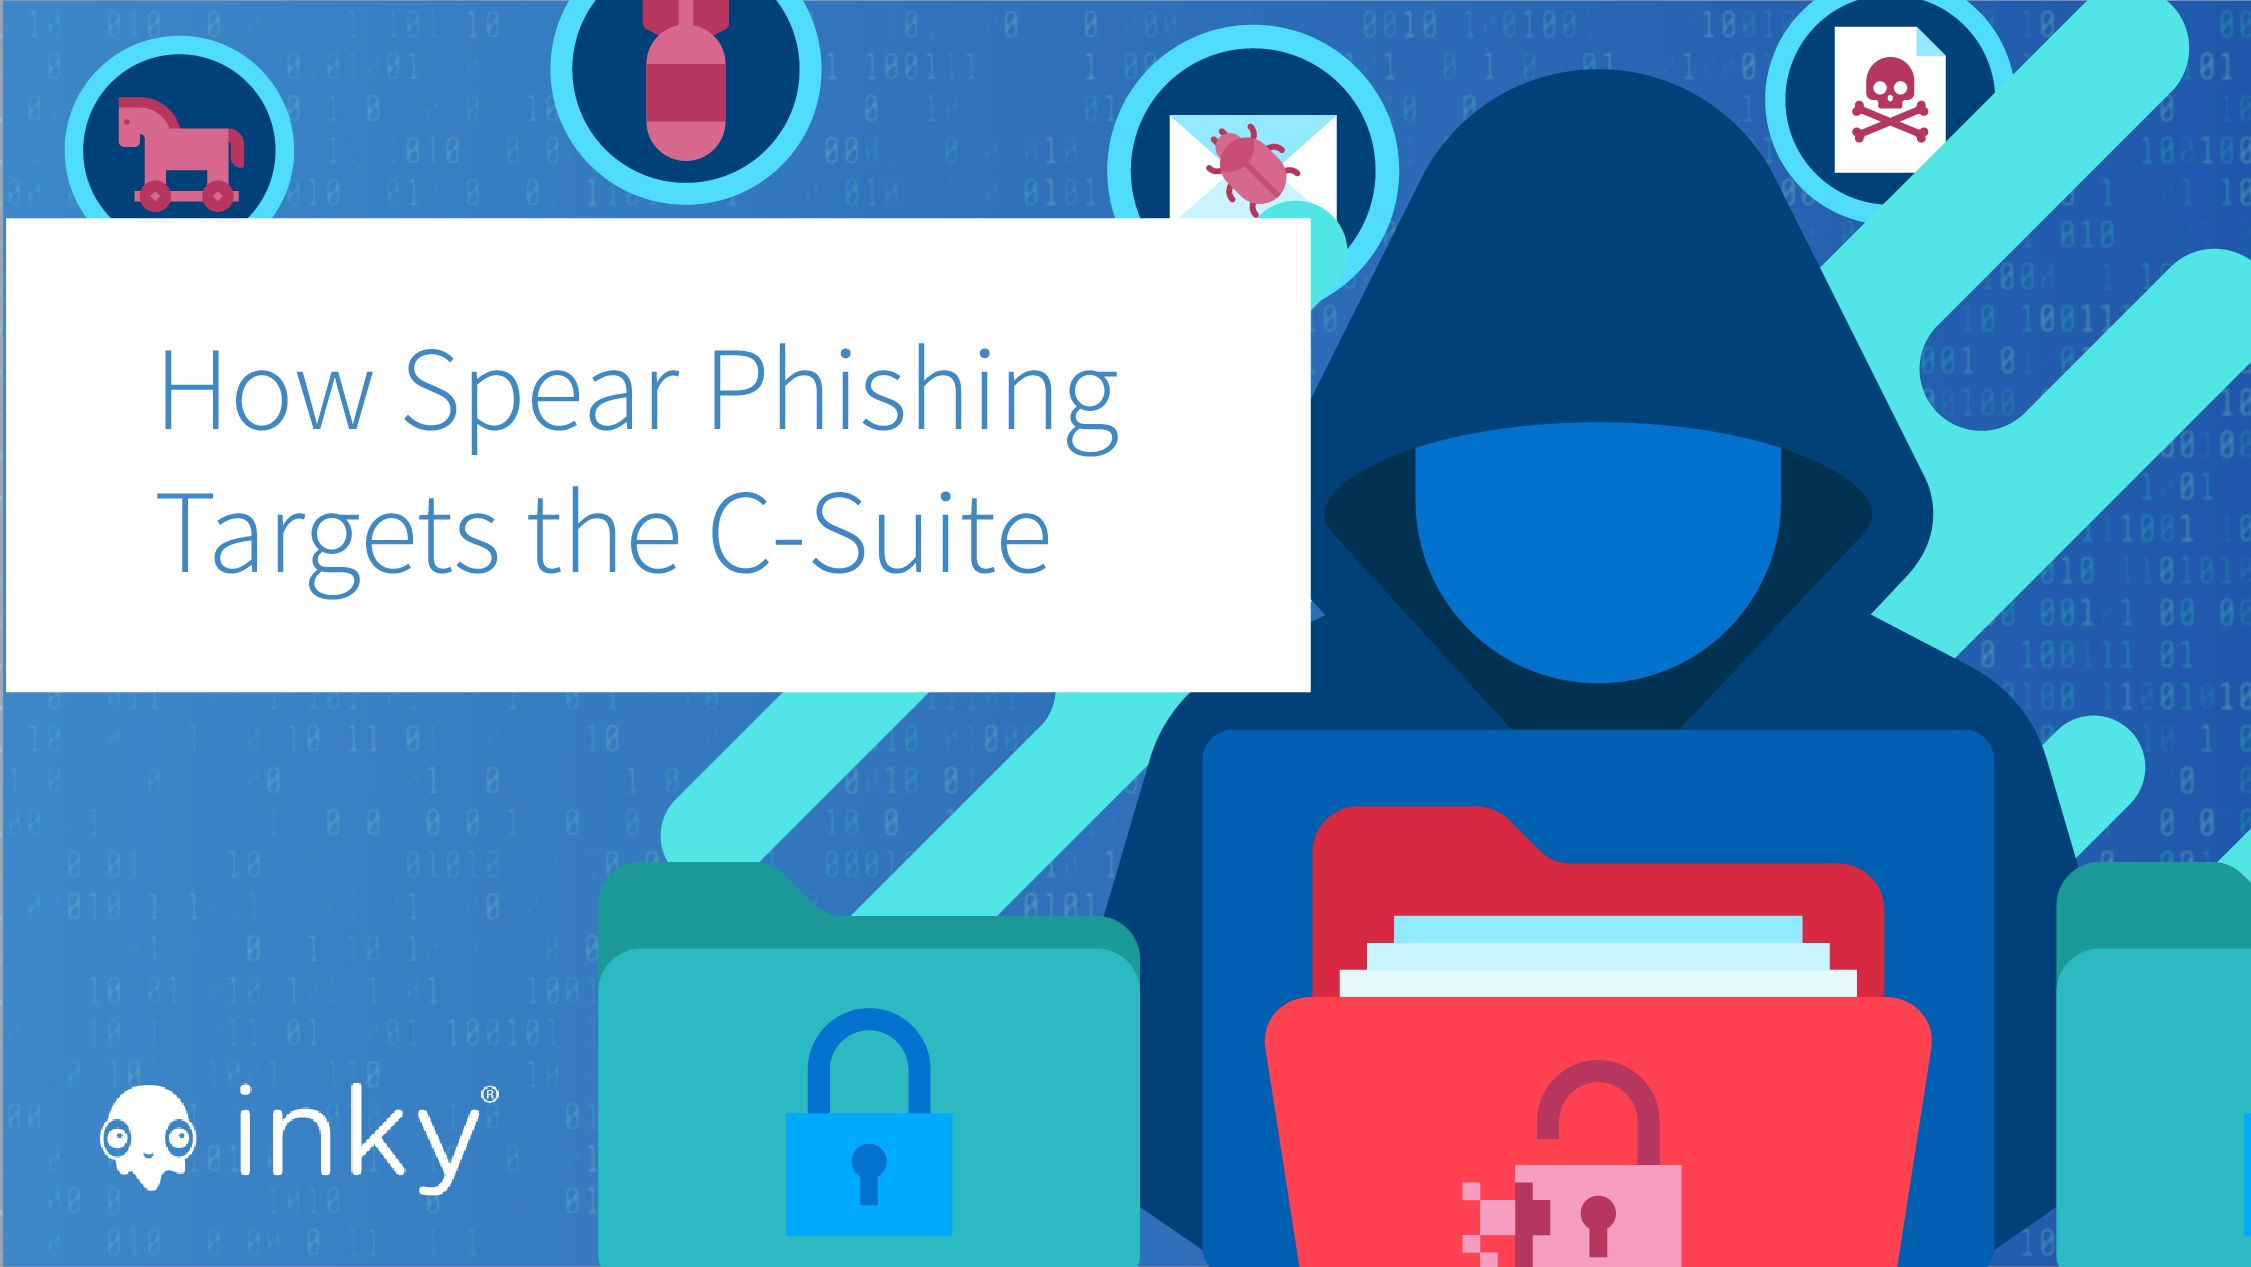 How Spear Phishing Targets the C-Suite